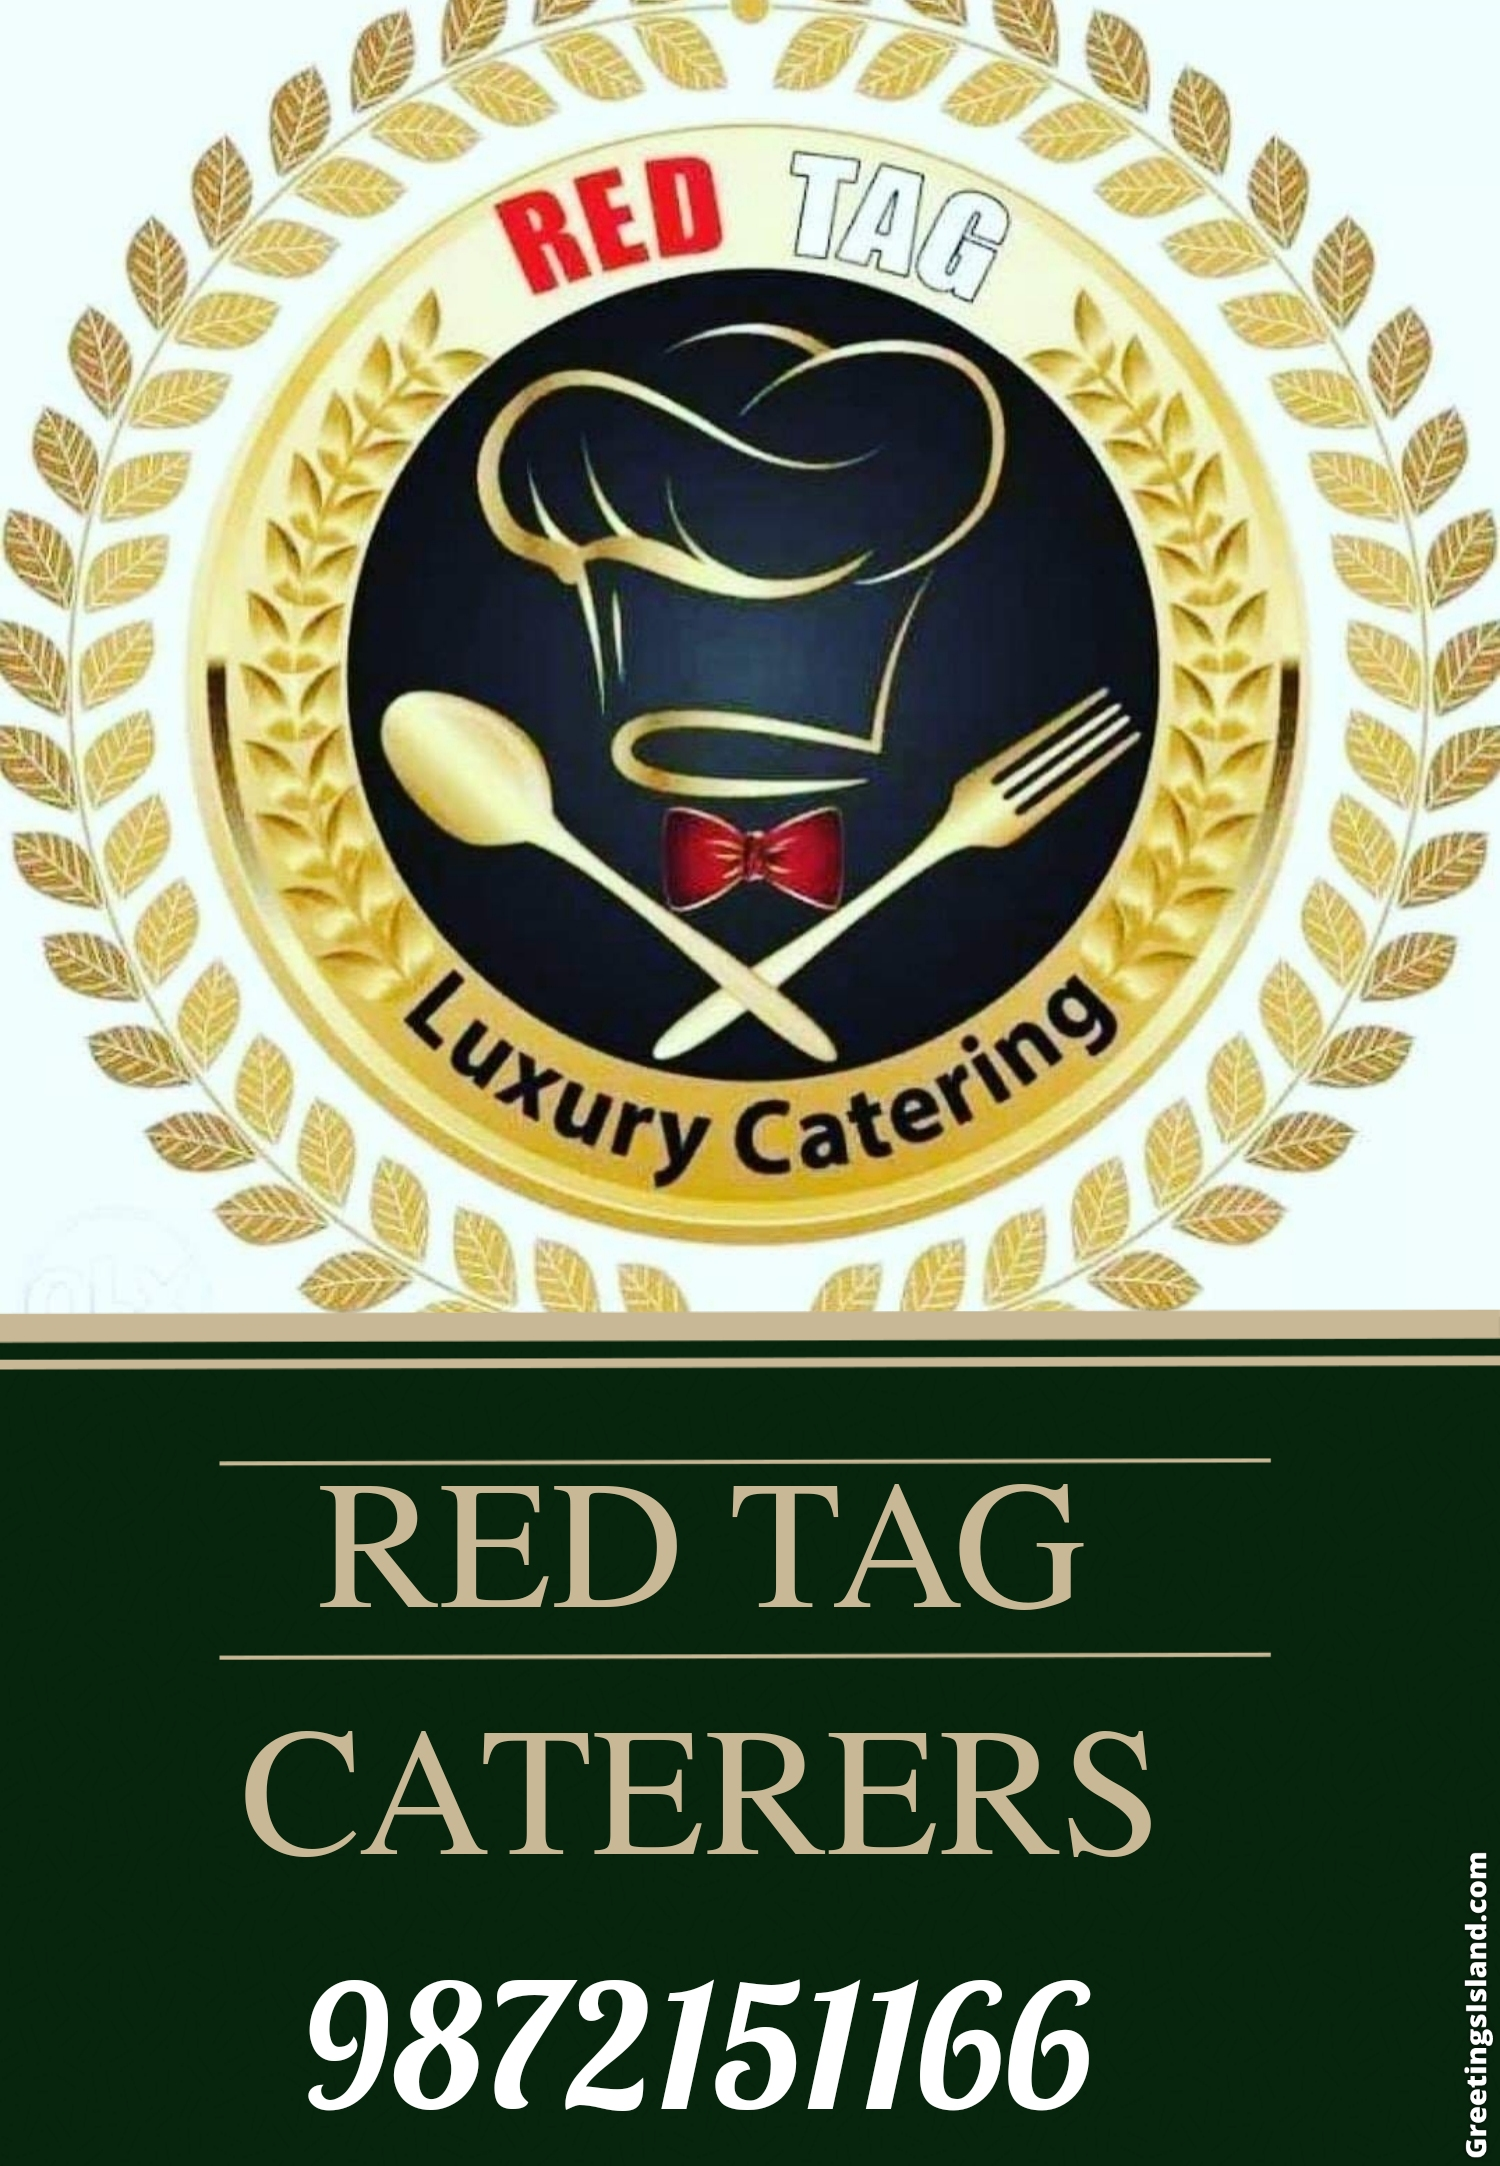 Red Tag Caterers, BEST CATERERS IN PANCHKULA, BEST CATERERS IN MOHALI, FABULOUS CATERING IN PANCHKULA, LUXURY CATERING SERVICE IN PANCHKULA,